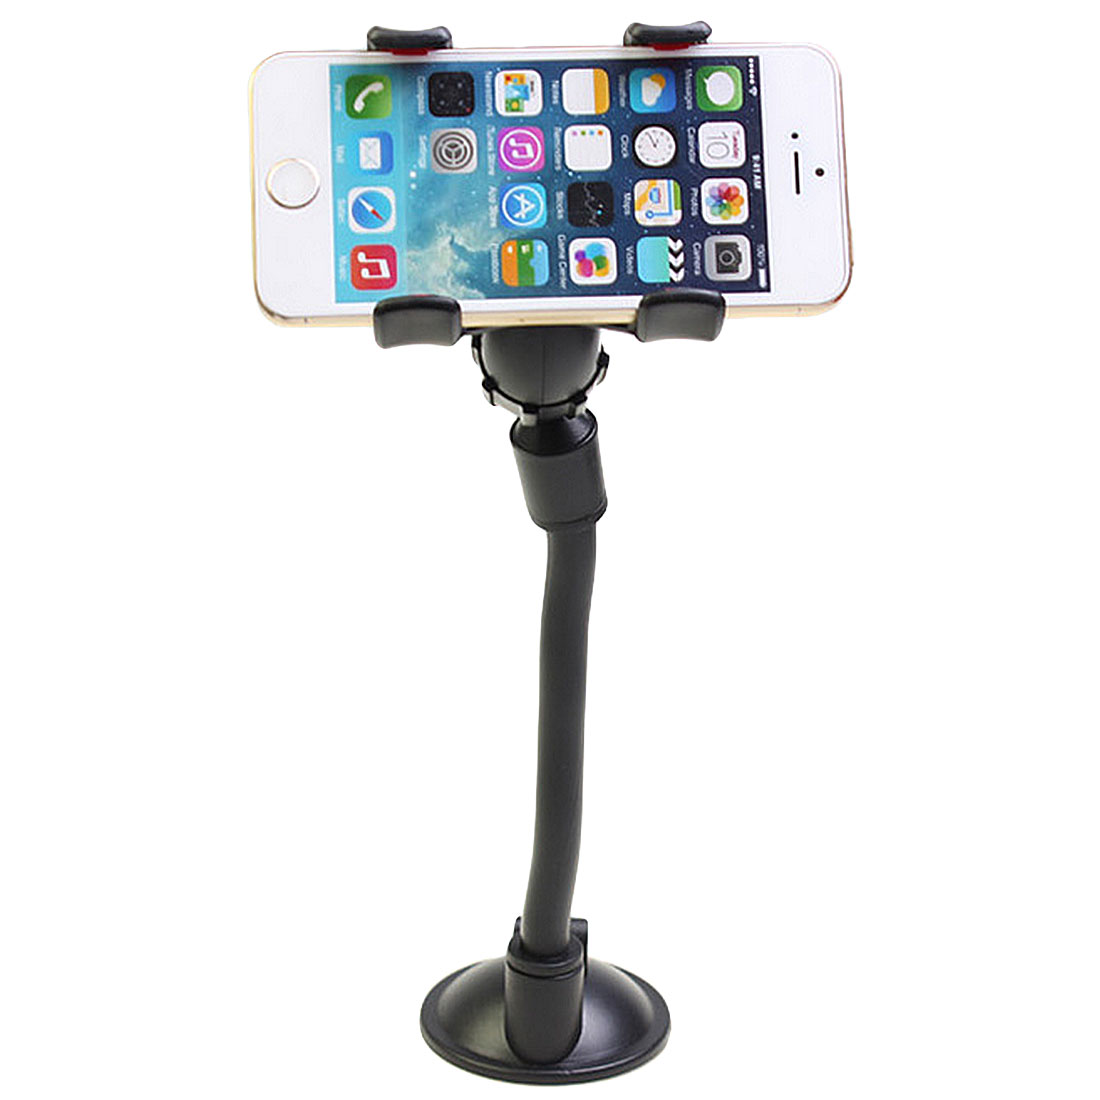 Dewtreetali Hot Sale Mobile Phone Mount holder with suction cup Multi-angle 360 Degree Rotating Clip Windshield Smartphone Car H sx 005 360 degree rotating vehicle general magnetic phone mount holder